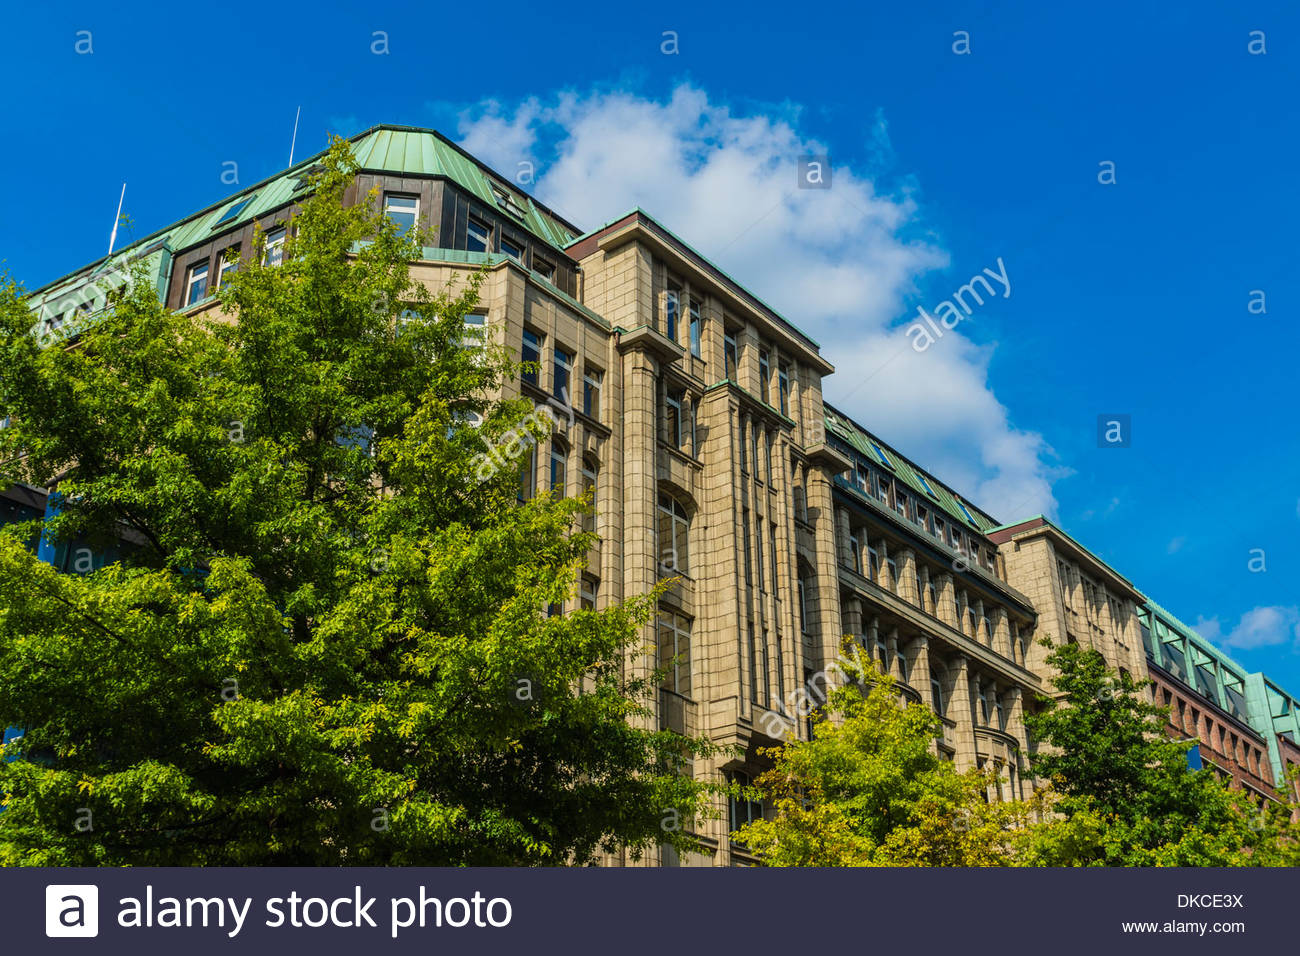 Commercial buildings, Hamburg, Germany - Stock Image